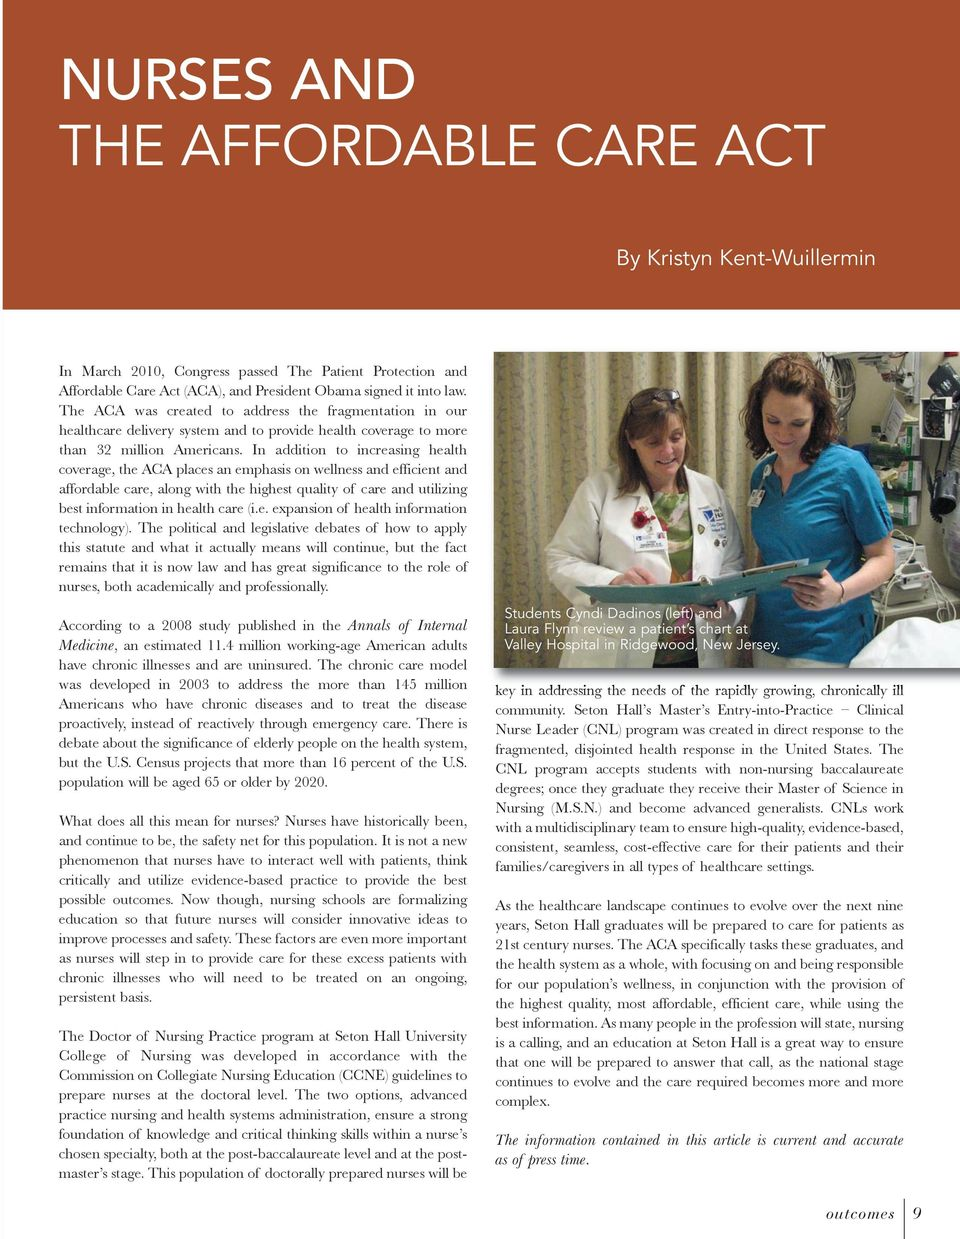 In addition to increasing health coverage, the ACA places an emphasis on wellness and efficient and affordable care, along with the highest quality of care and utilizing best information in health